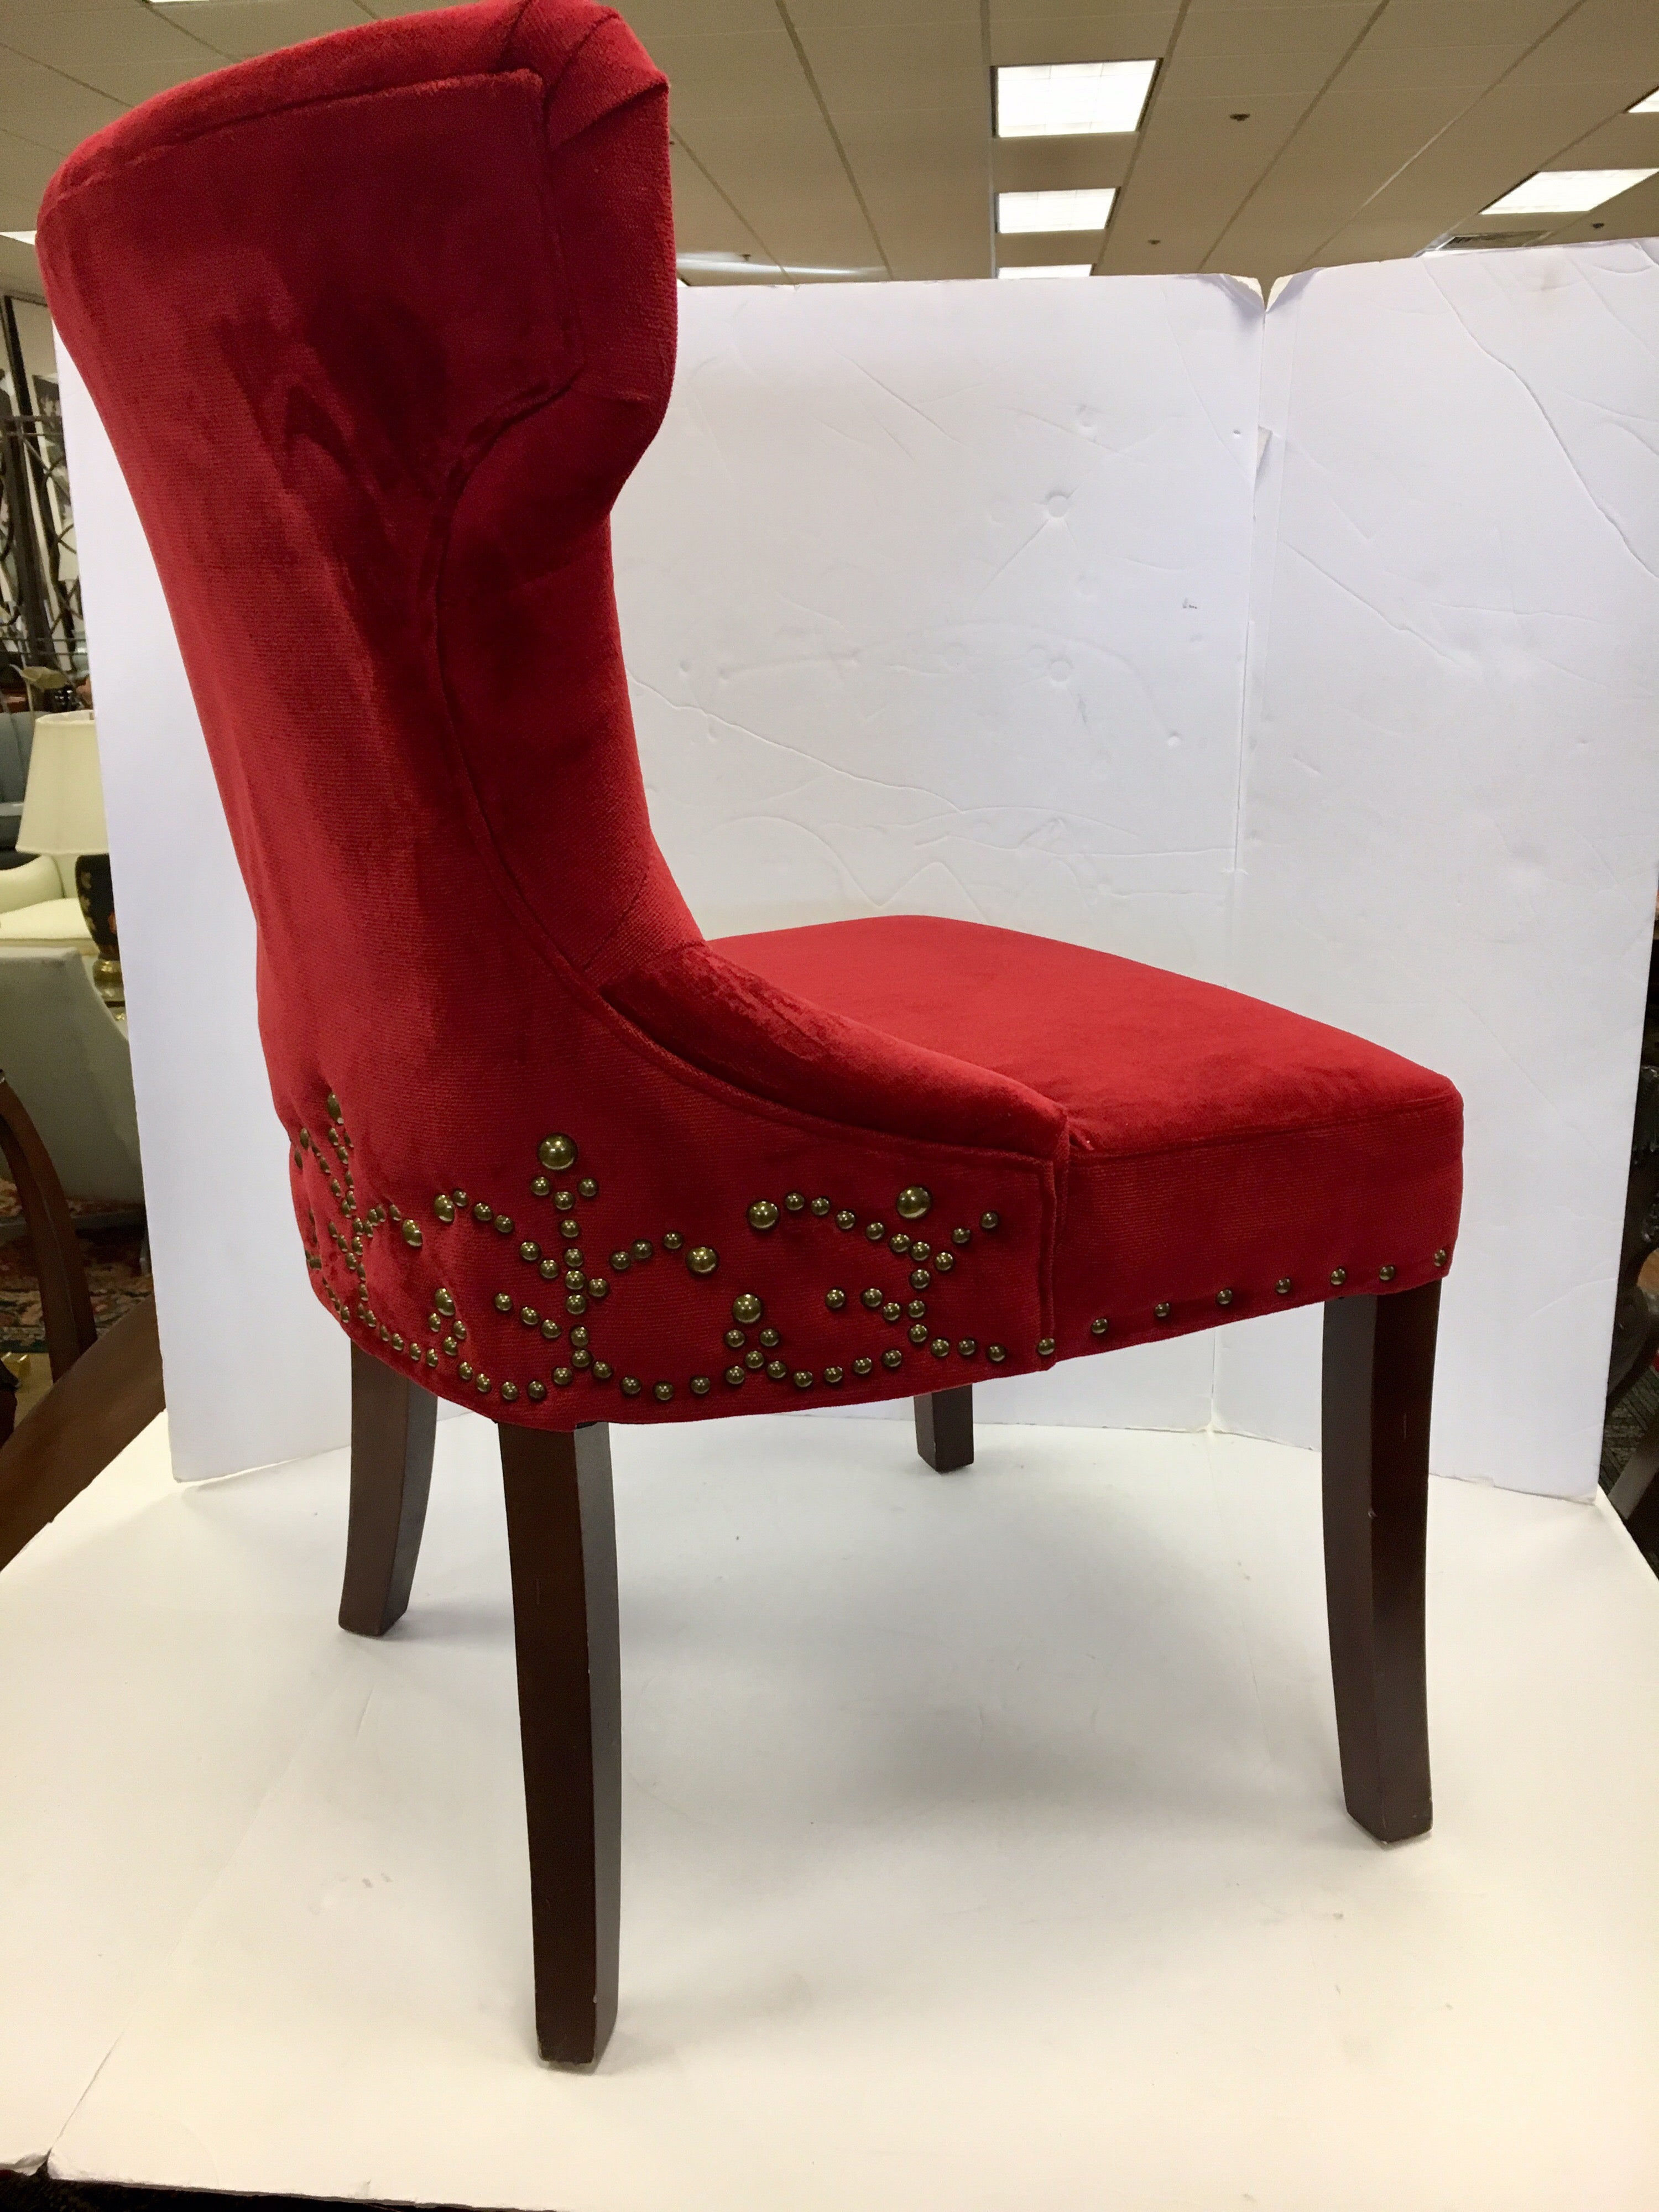 Red Upholstered Dining Chairs Custom Upholstered Nailhead Red Tufted Dining Chair